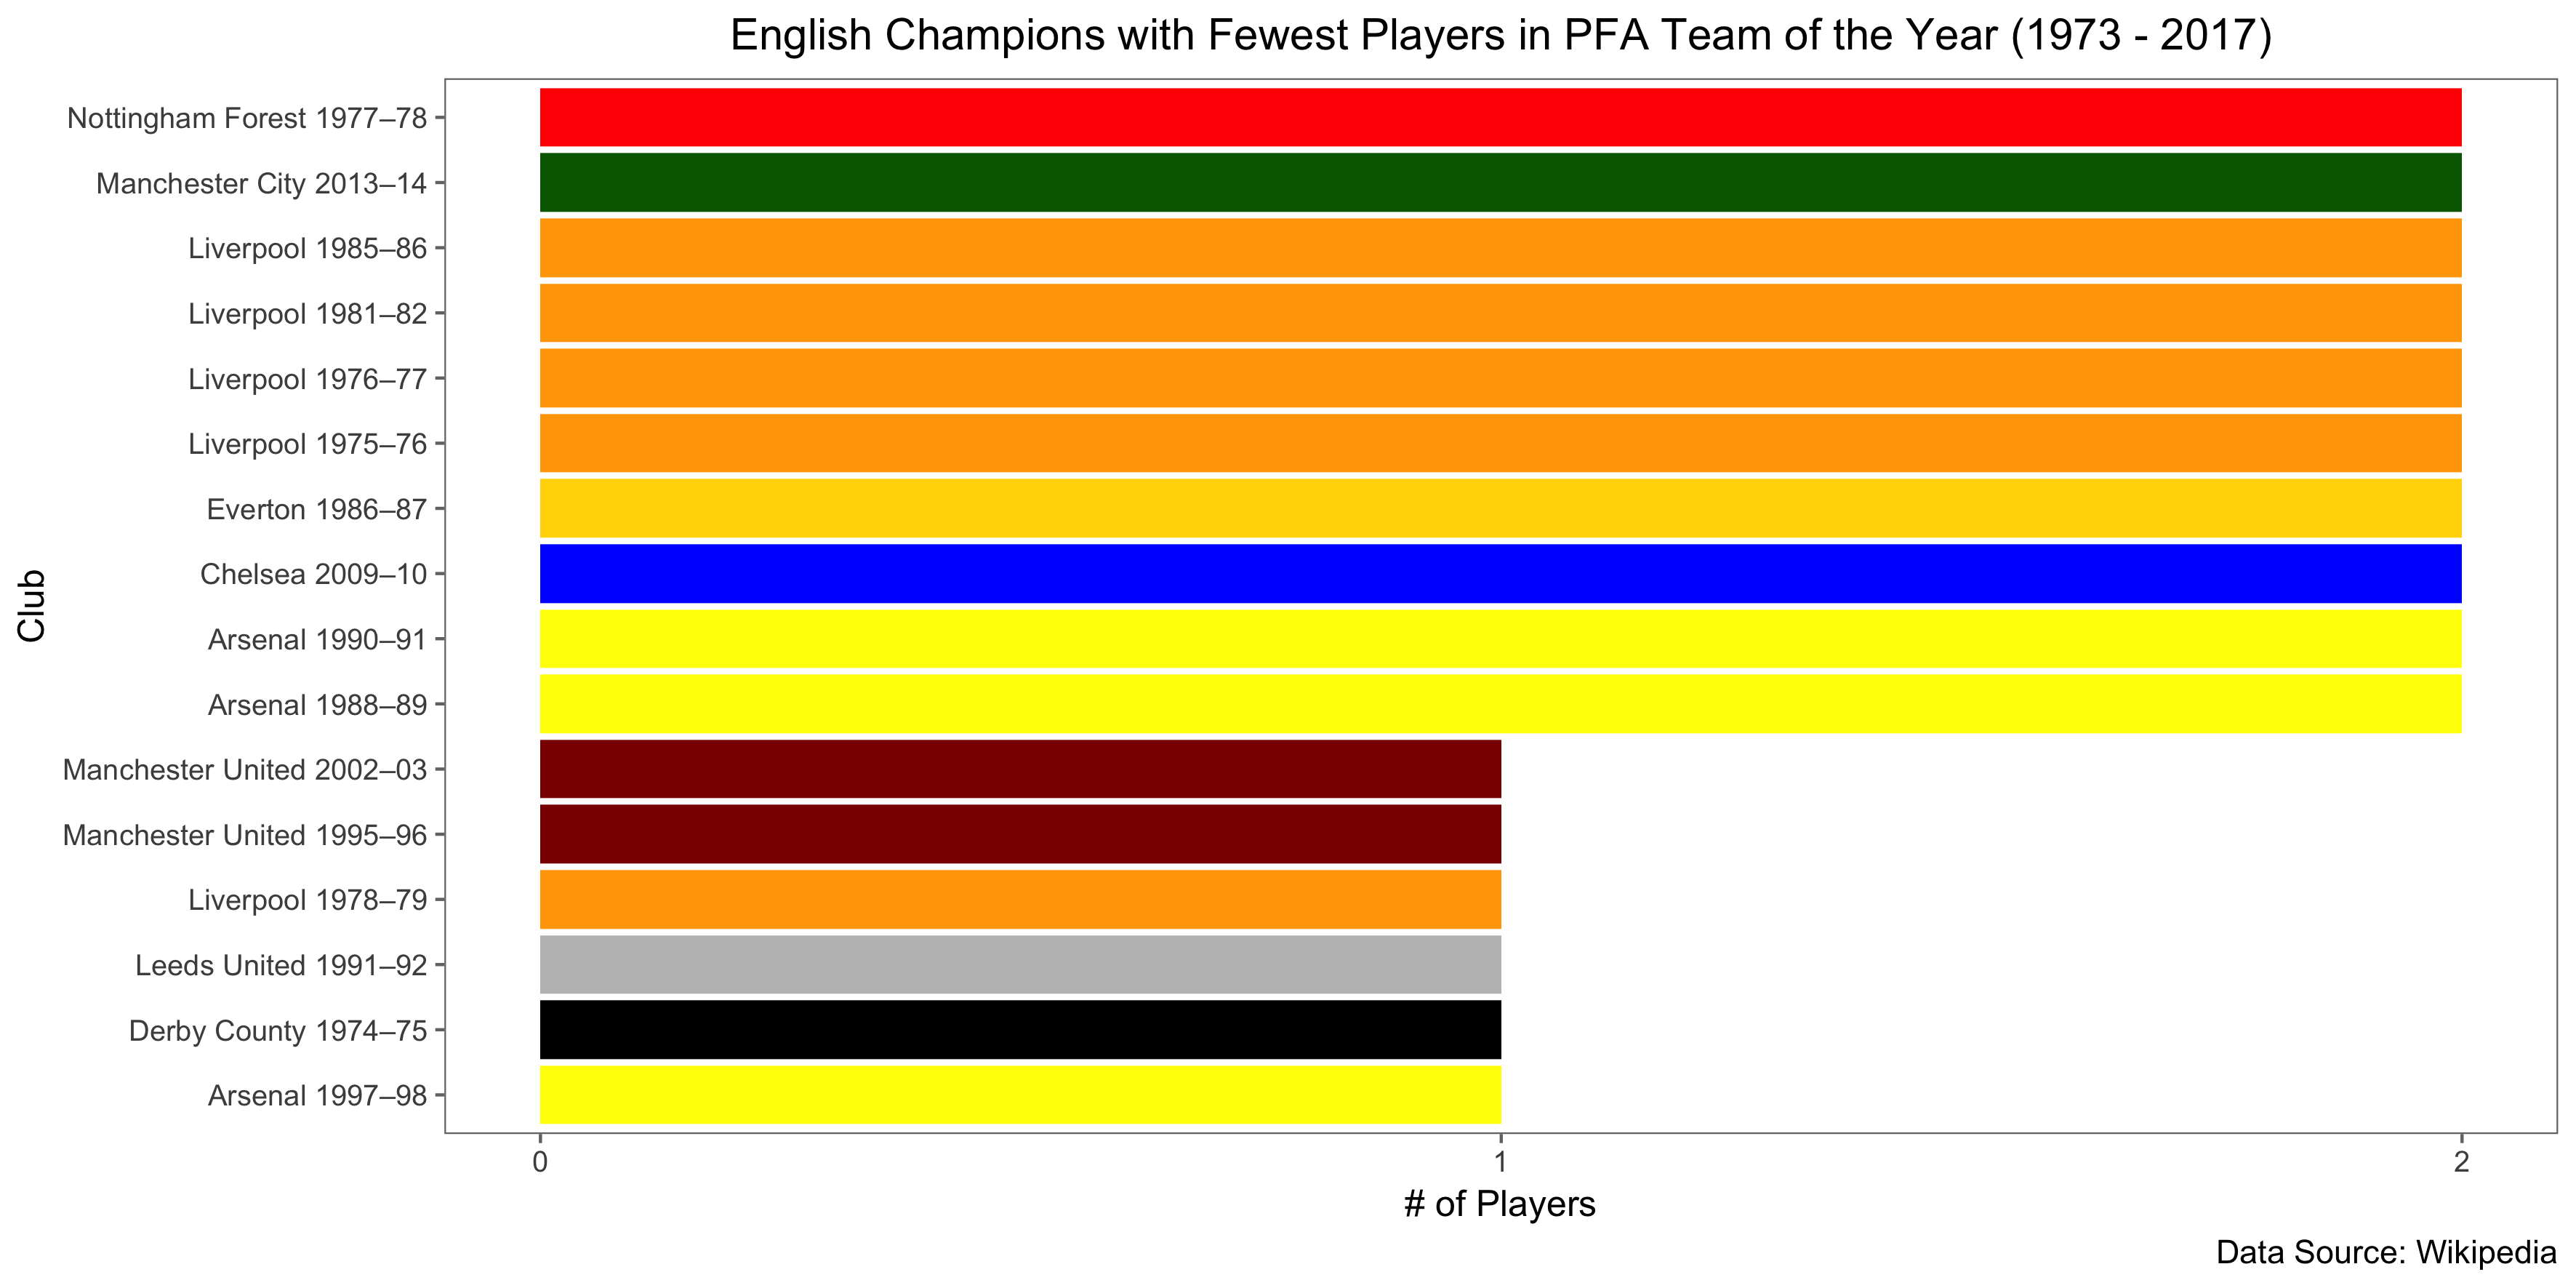 Analyzing English Team of the Year Data Since 1973 – World Soccer